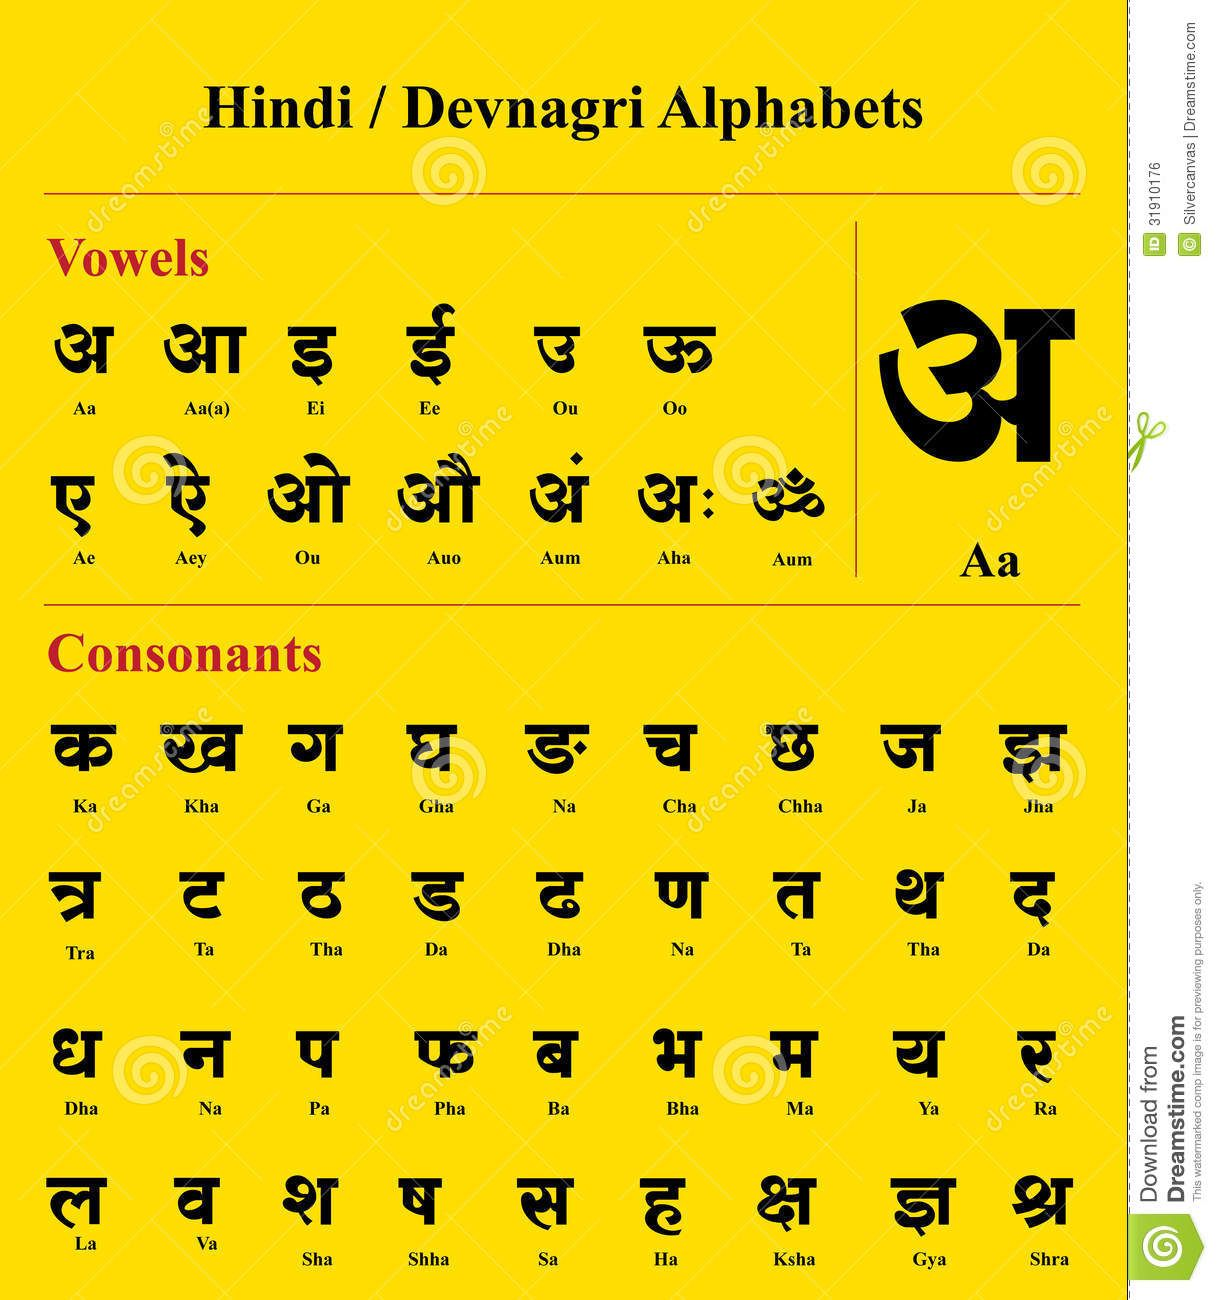 Hindi Devnagari Alphabet Devanagari English Translation